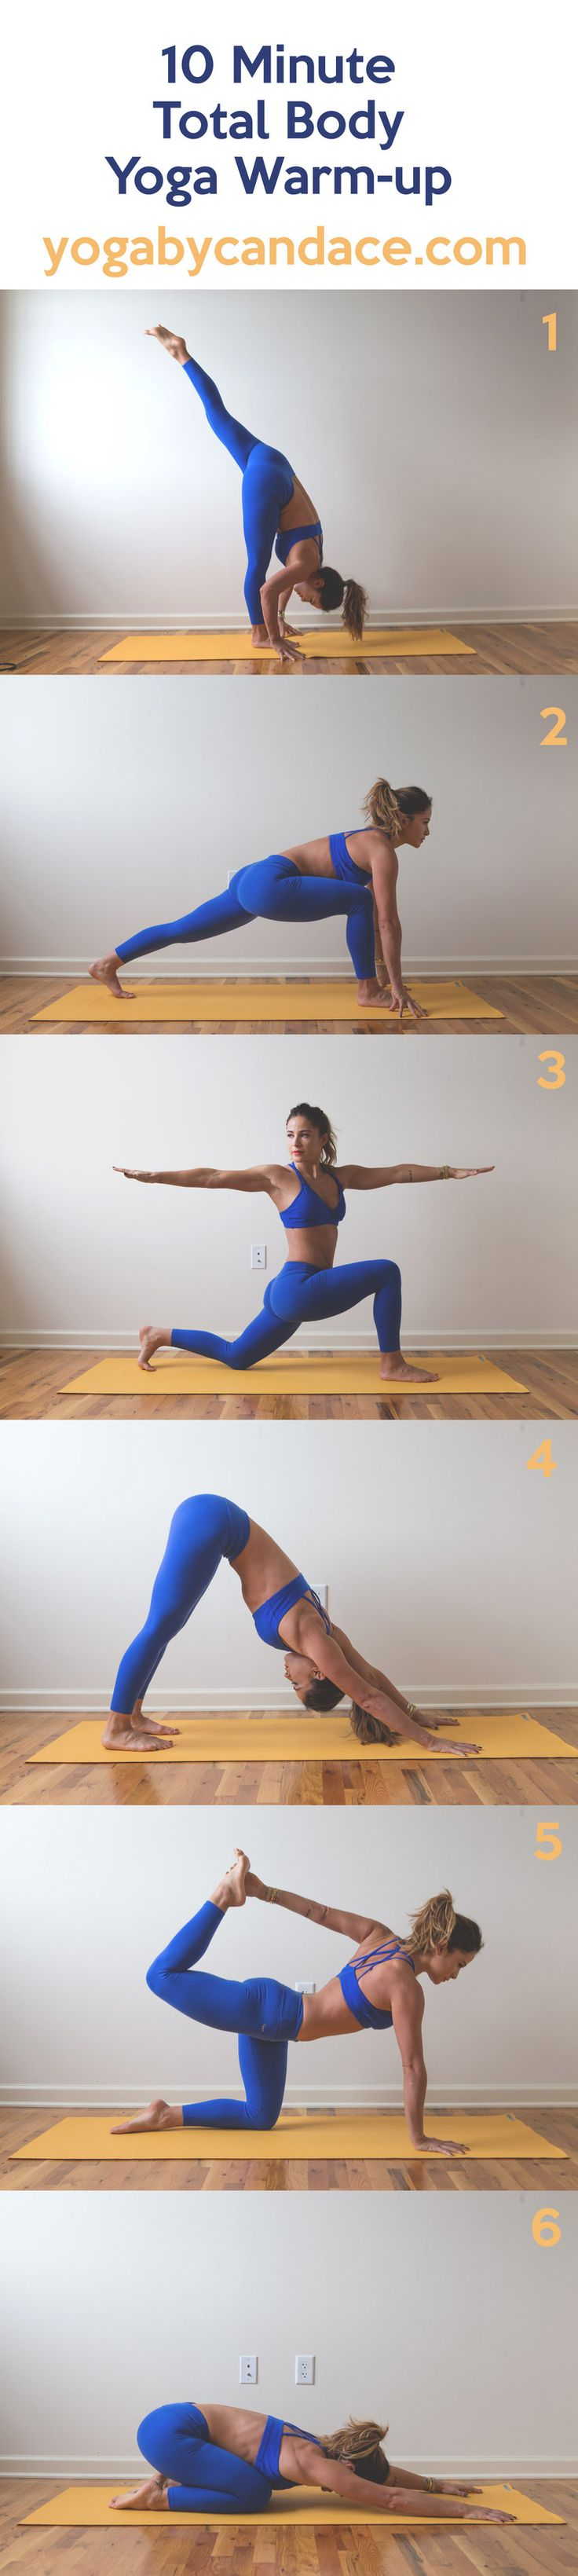 Total Body Yoga Warm Up